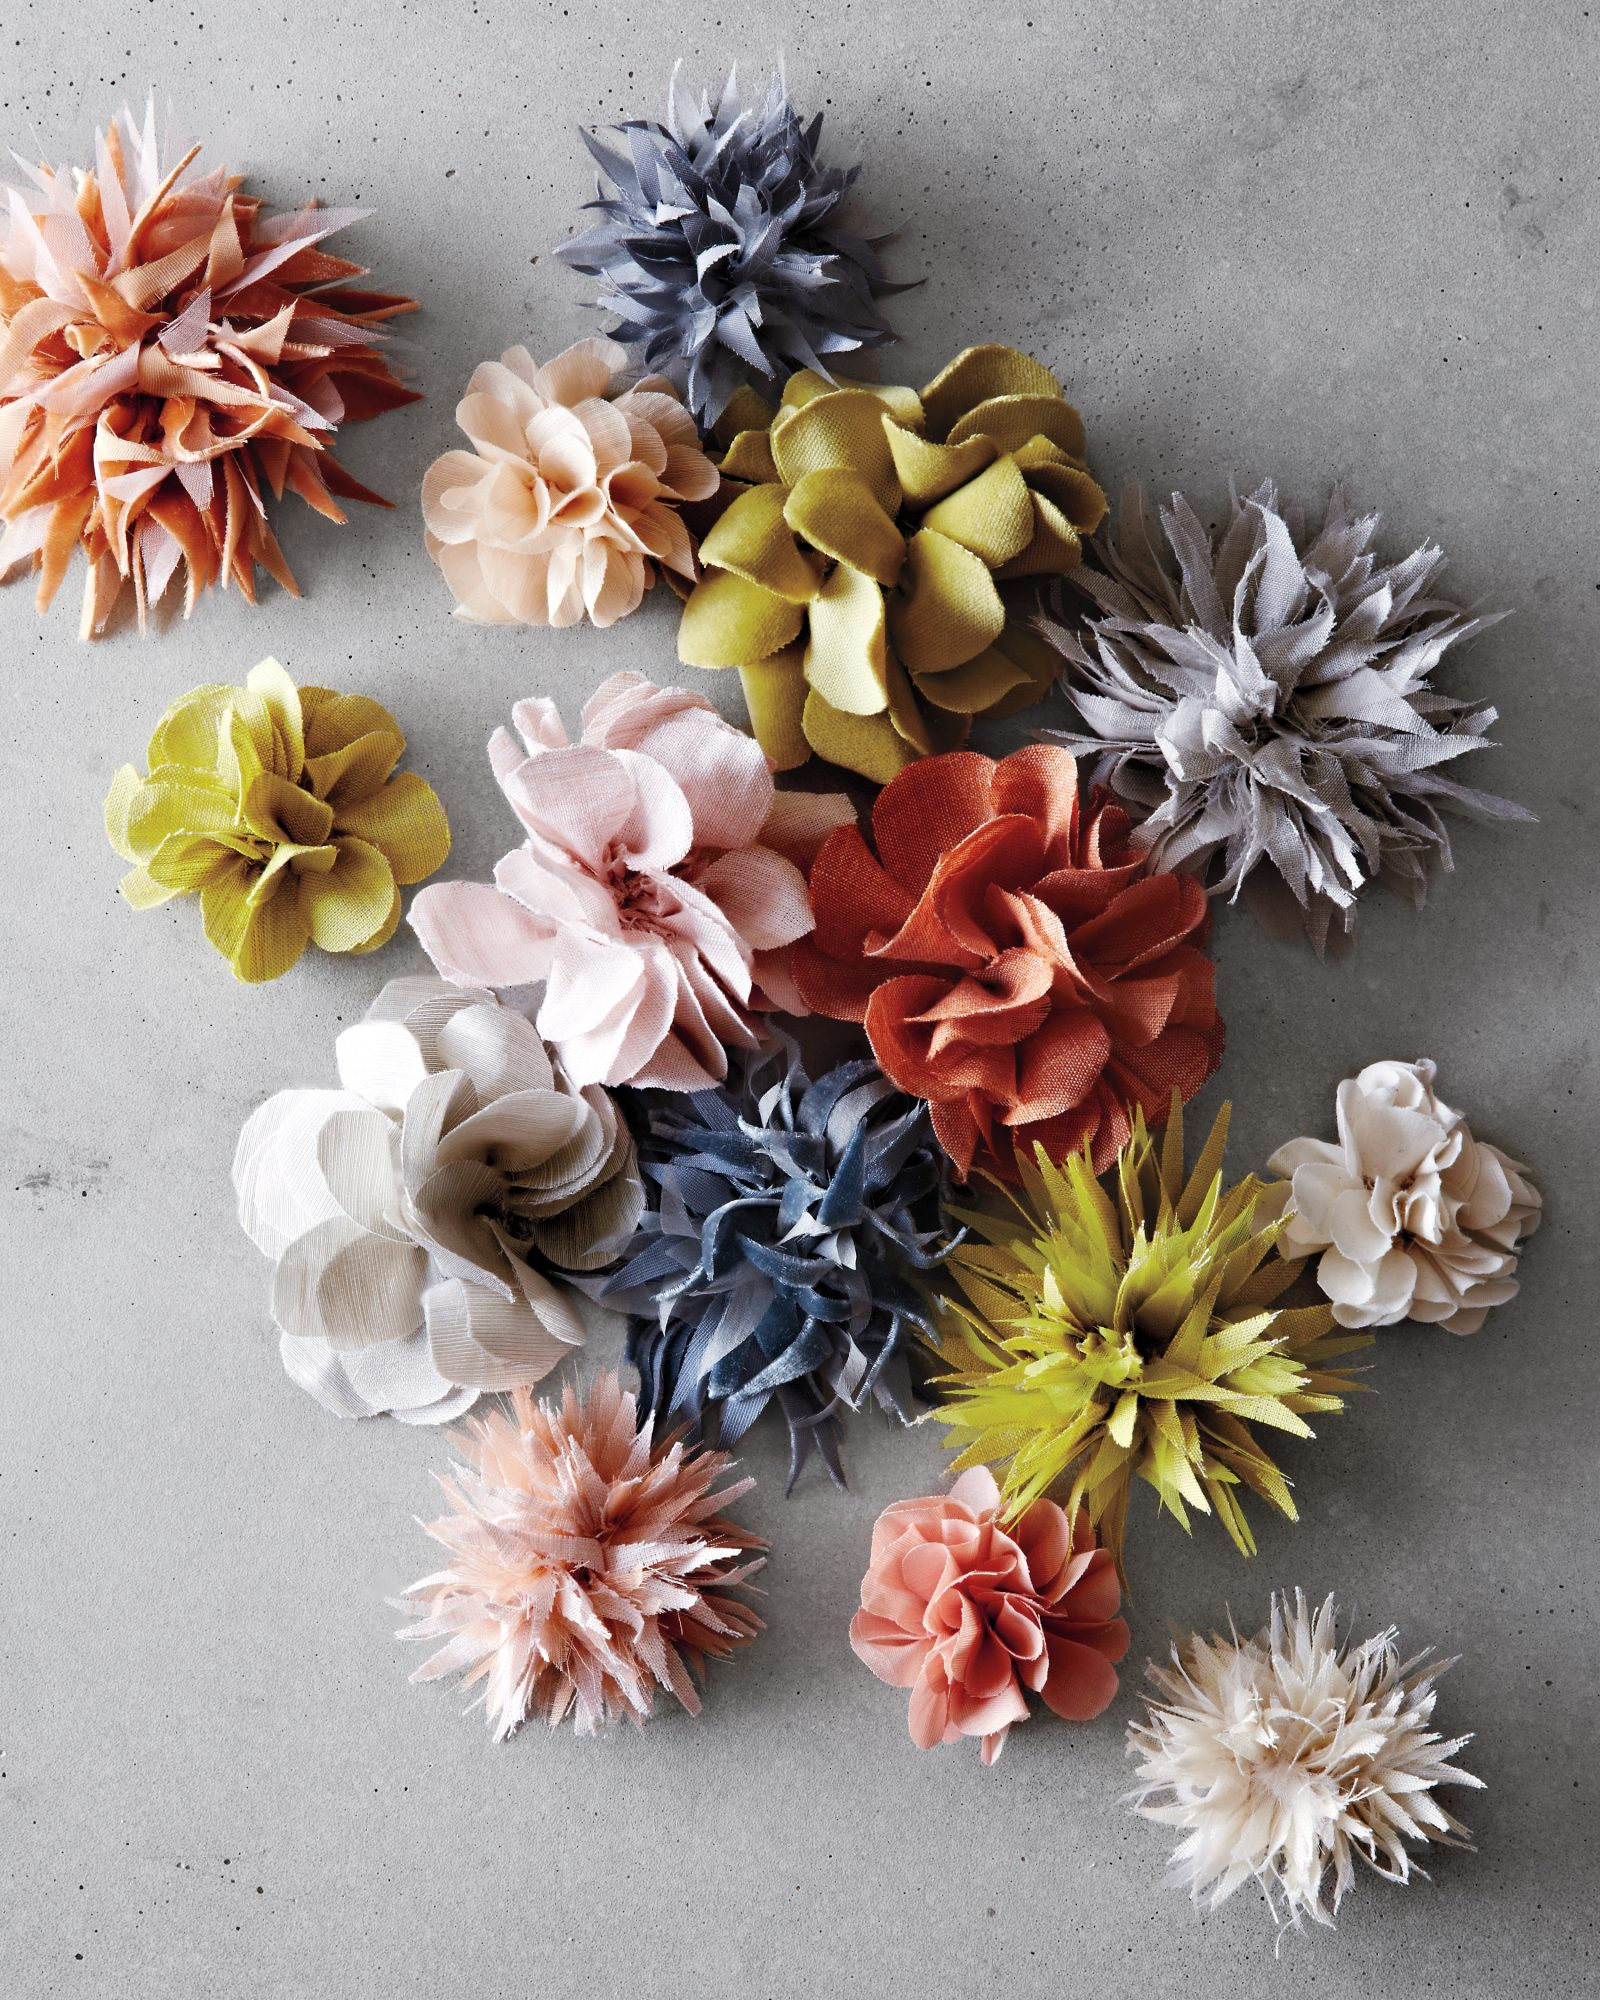 composed-corsages-048-md110947.jpg